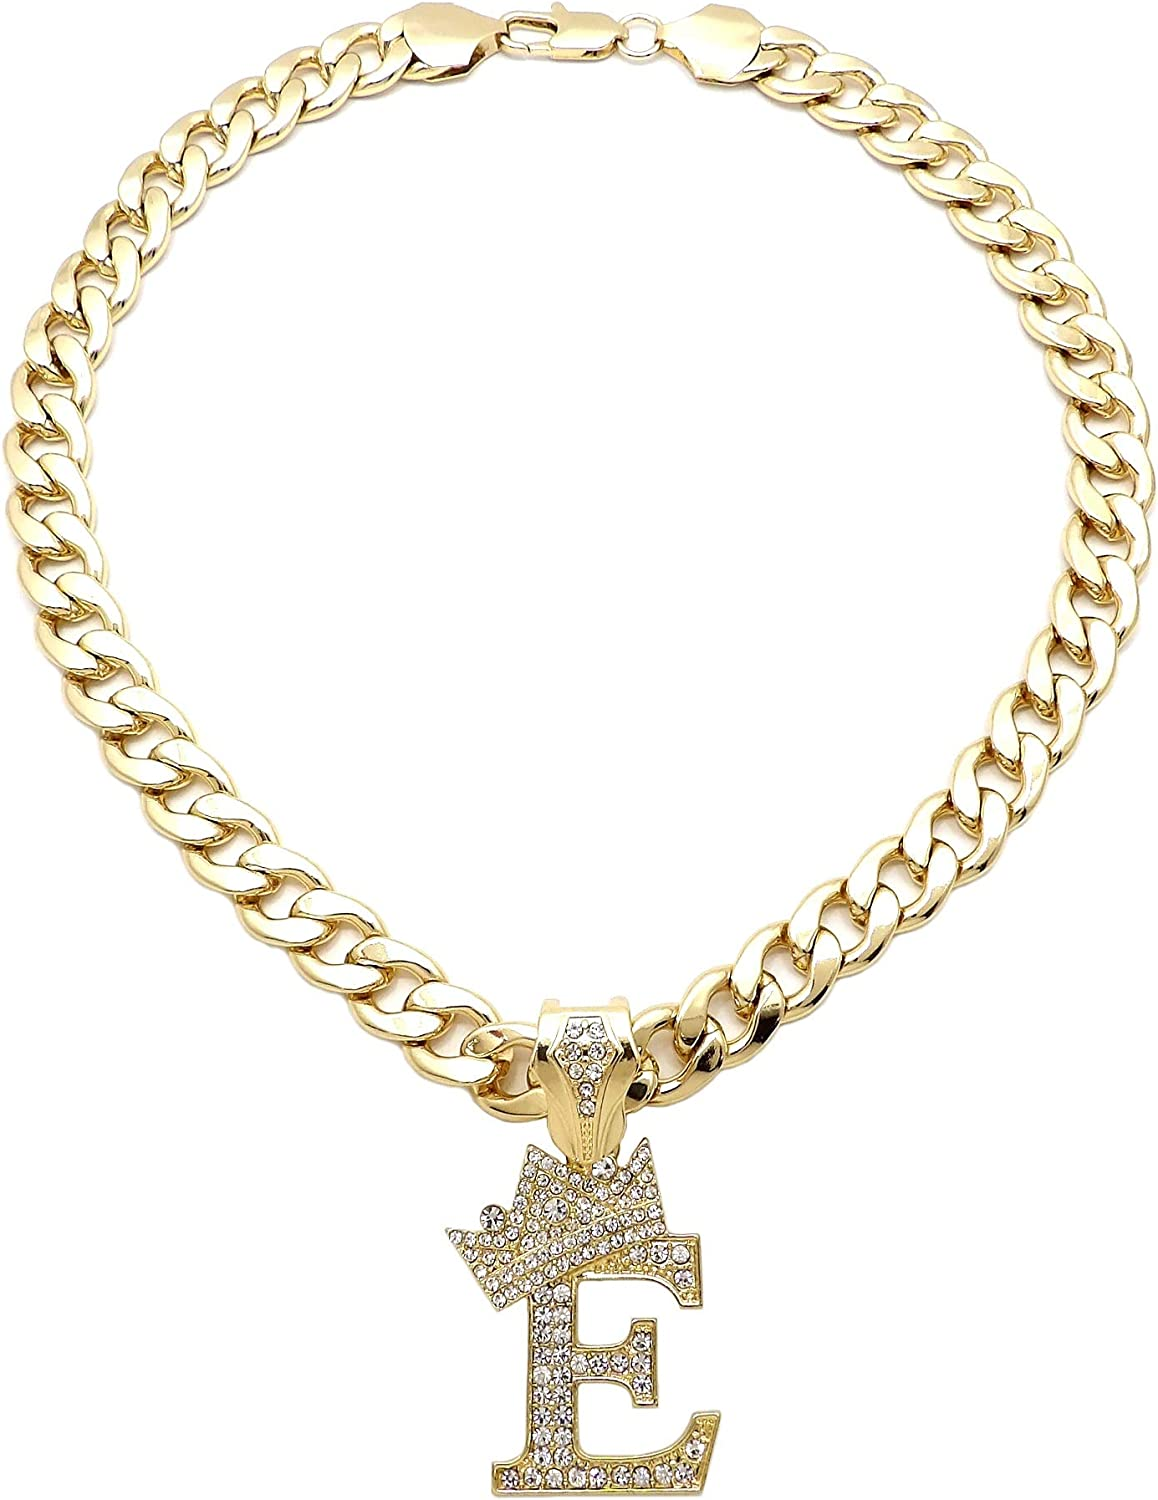 SJ ICED Out Alphabet Letter Pendant /& 11mm//20 Cuban Chain Gold Plated Necklaces RC3399G